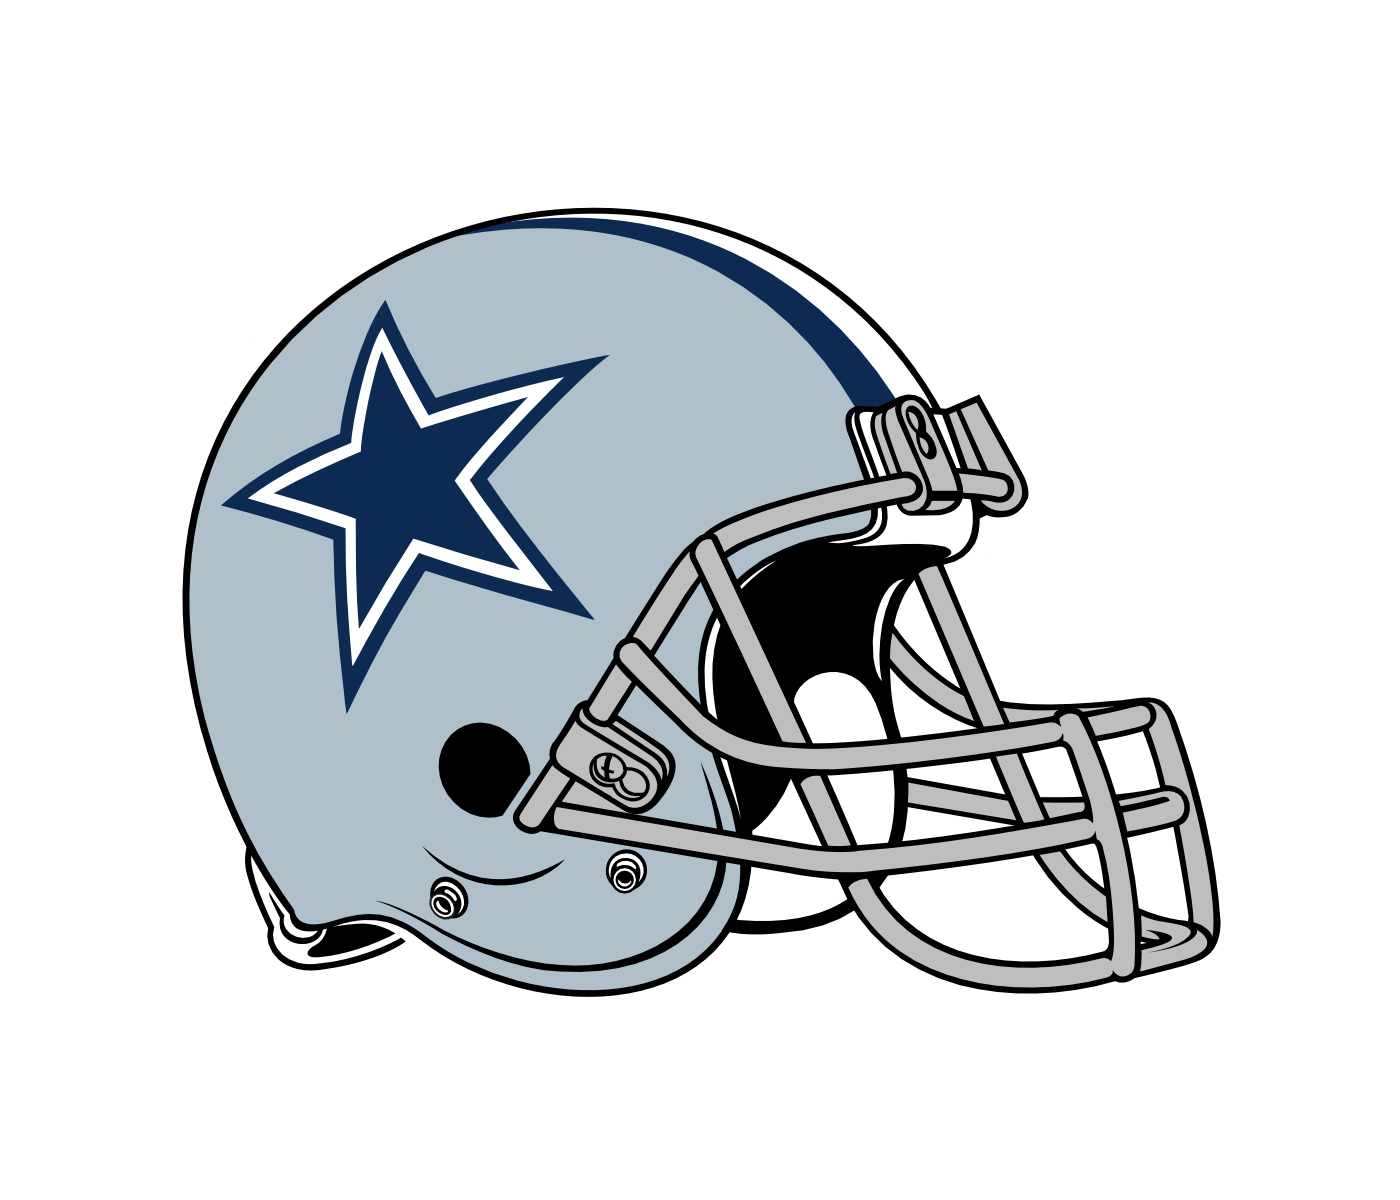 Dallas cowboys helmet clipart at free for personal png.